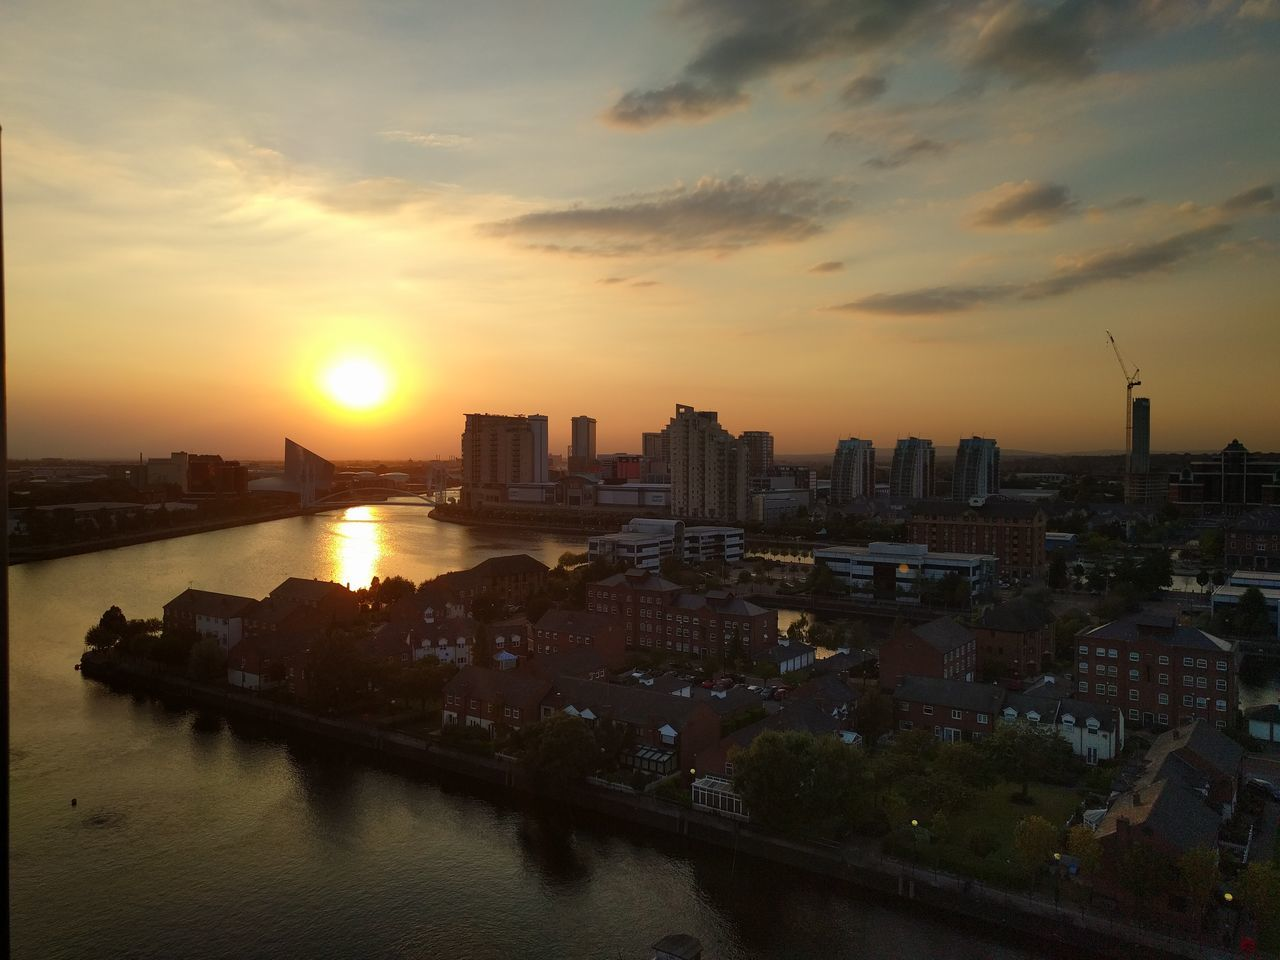 Sunset Sunset Urban Skyline City Outdoors Sky Warm Beautiful Mediacityuk